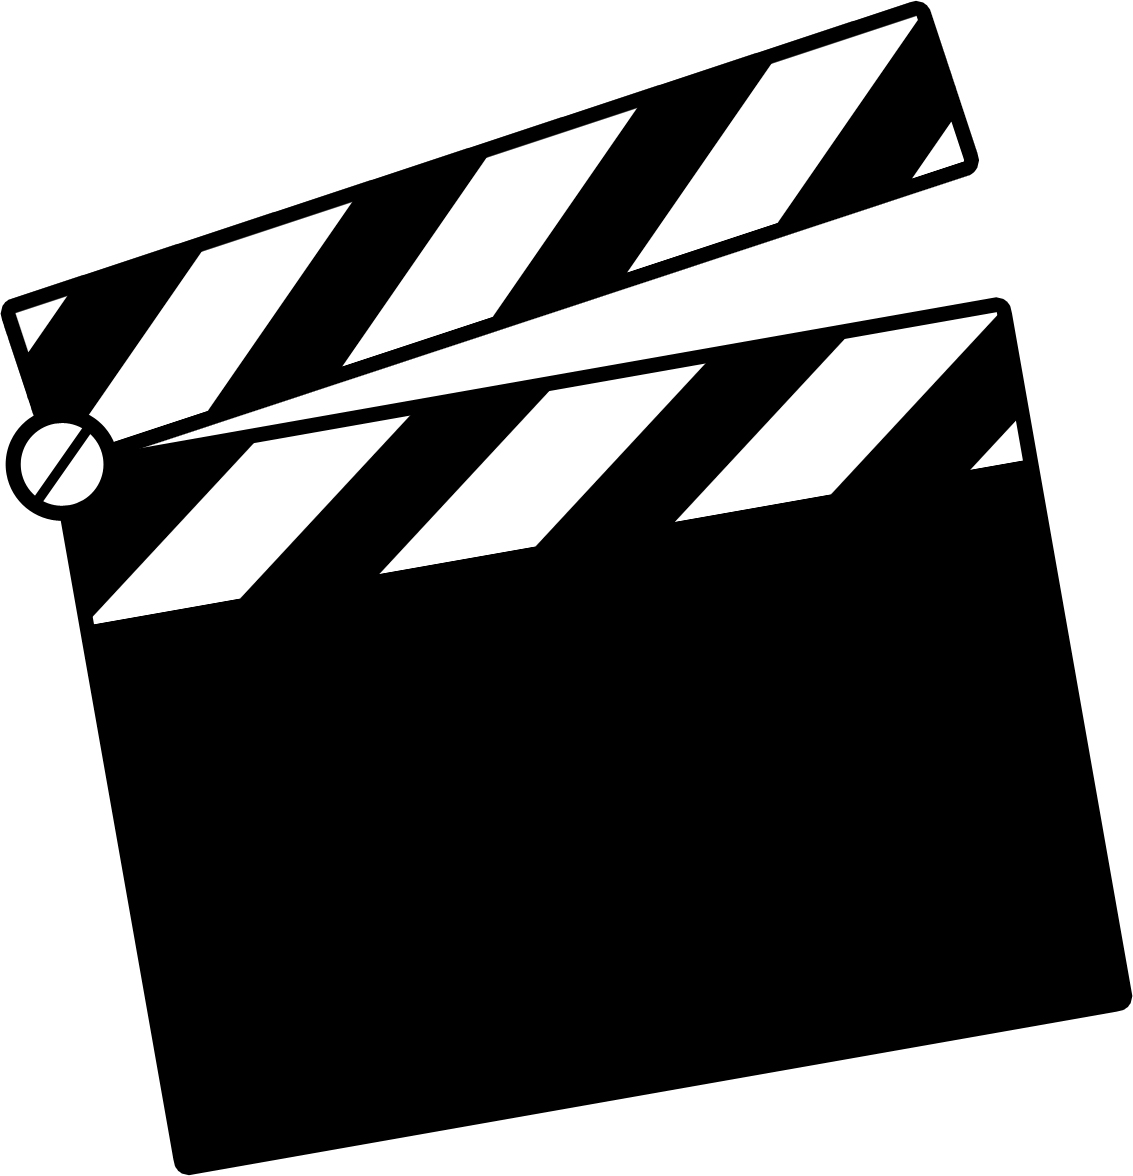 Cinema Clipart - Clipart Kid